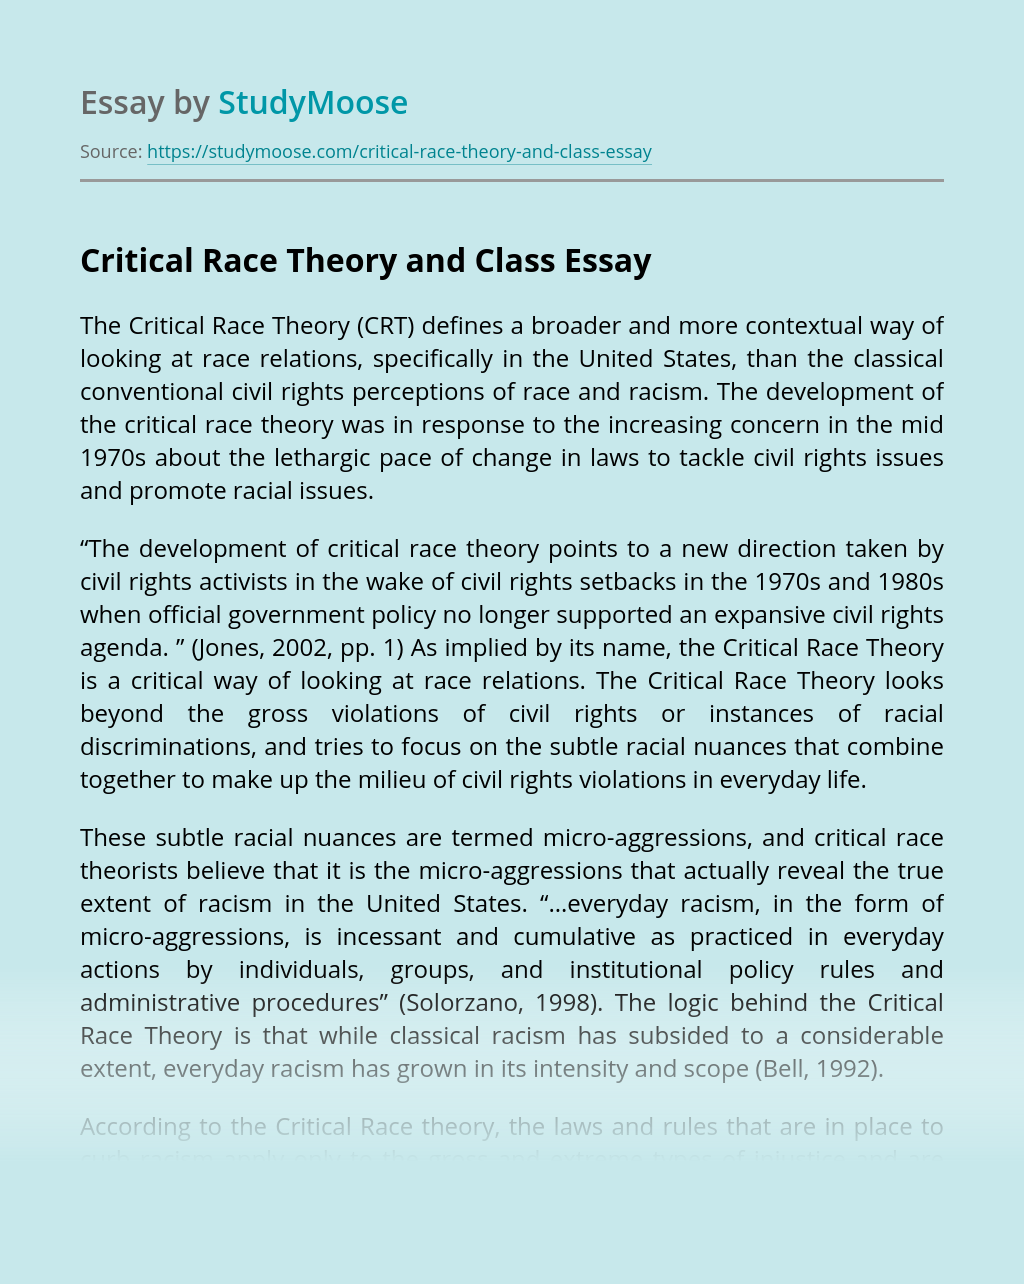 Critical Race Theory and Class